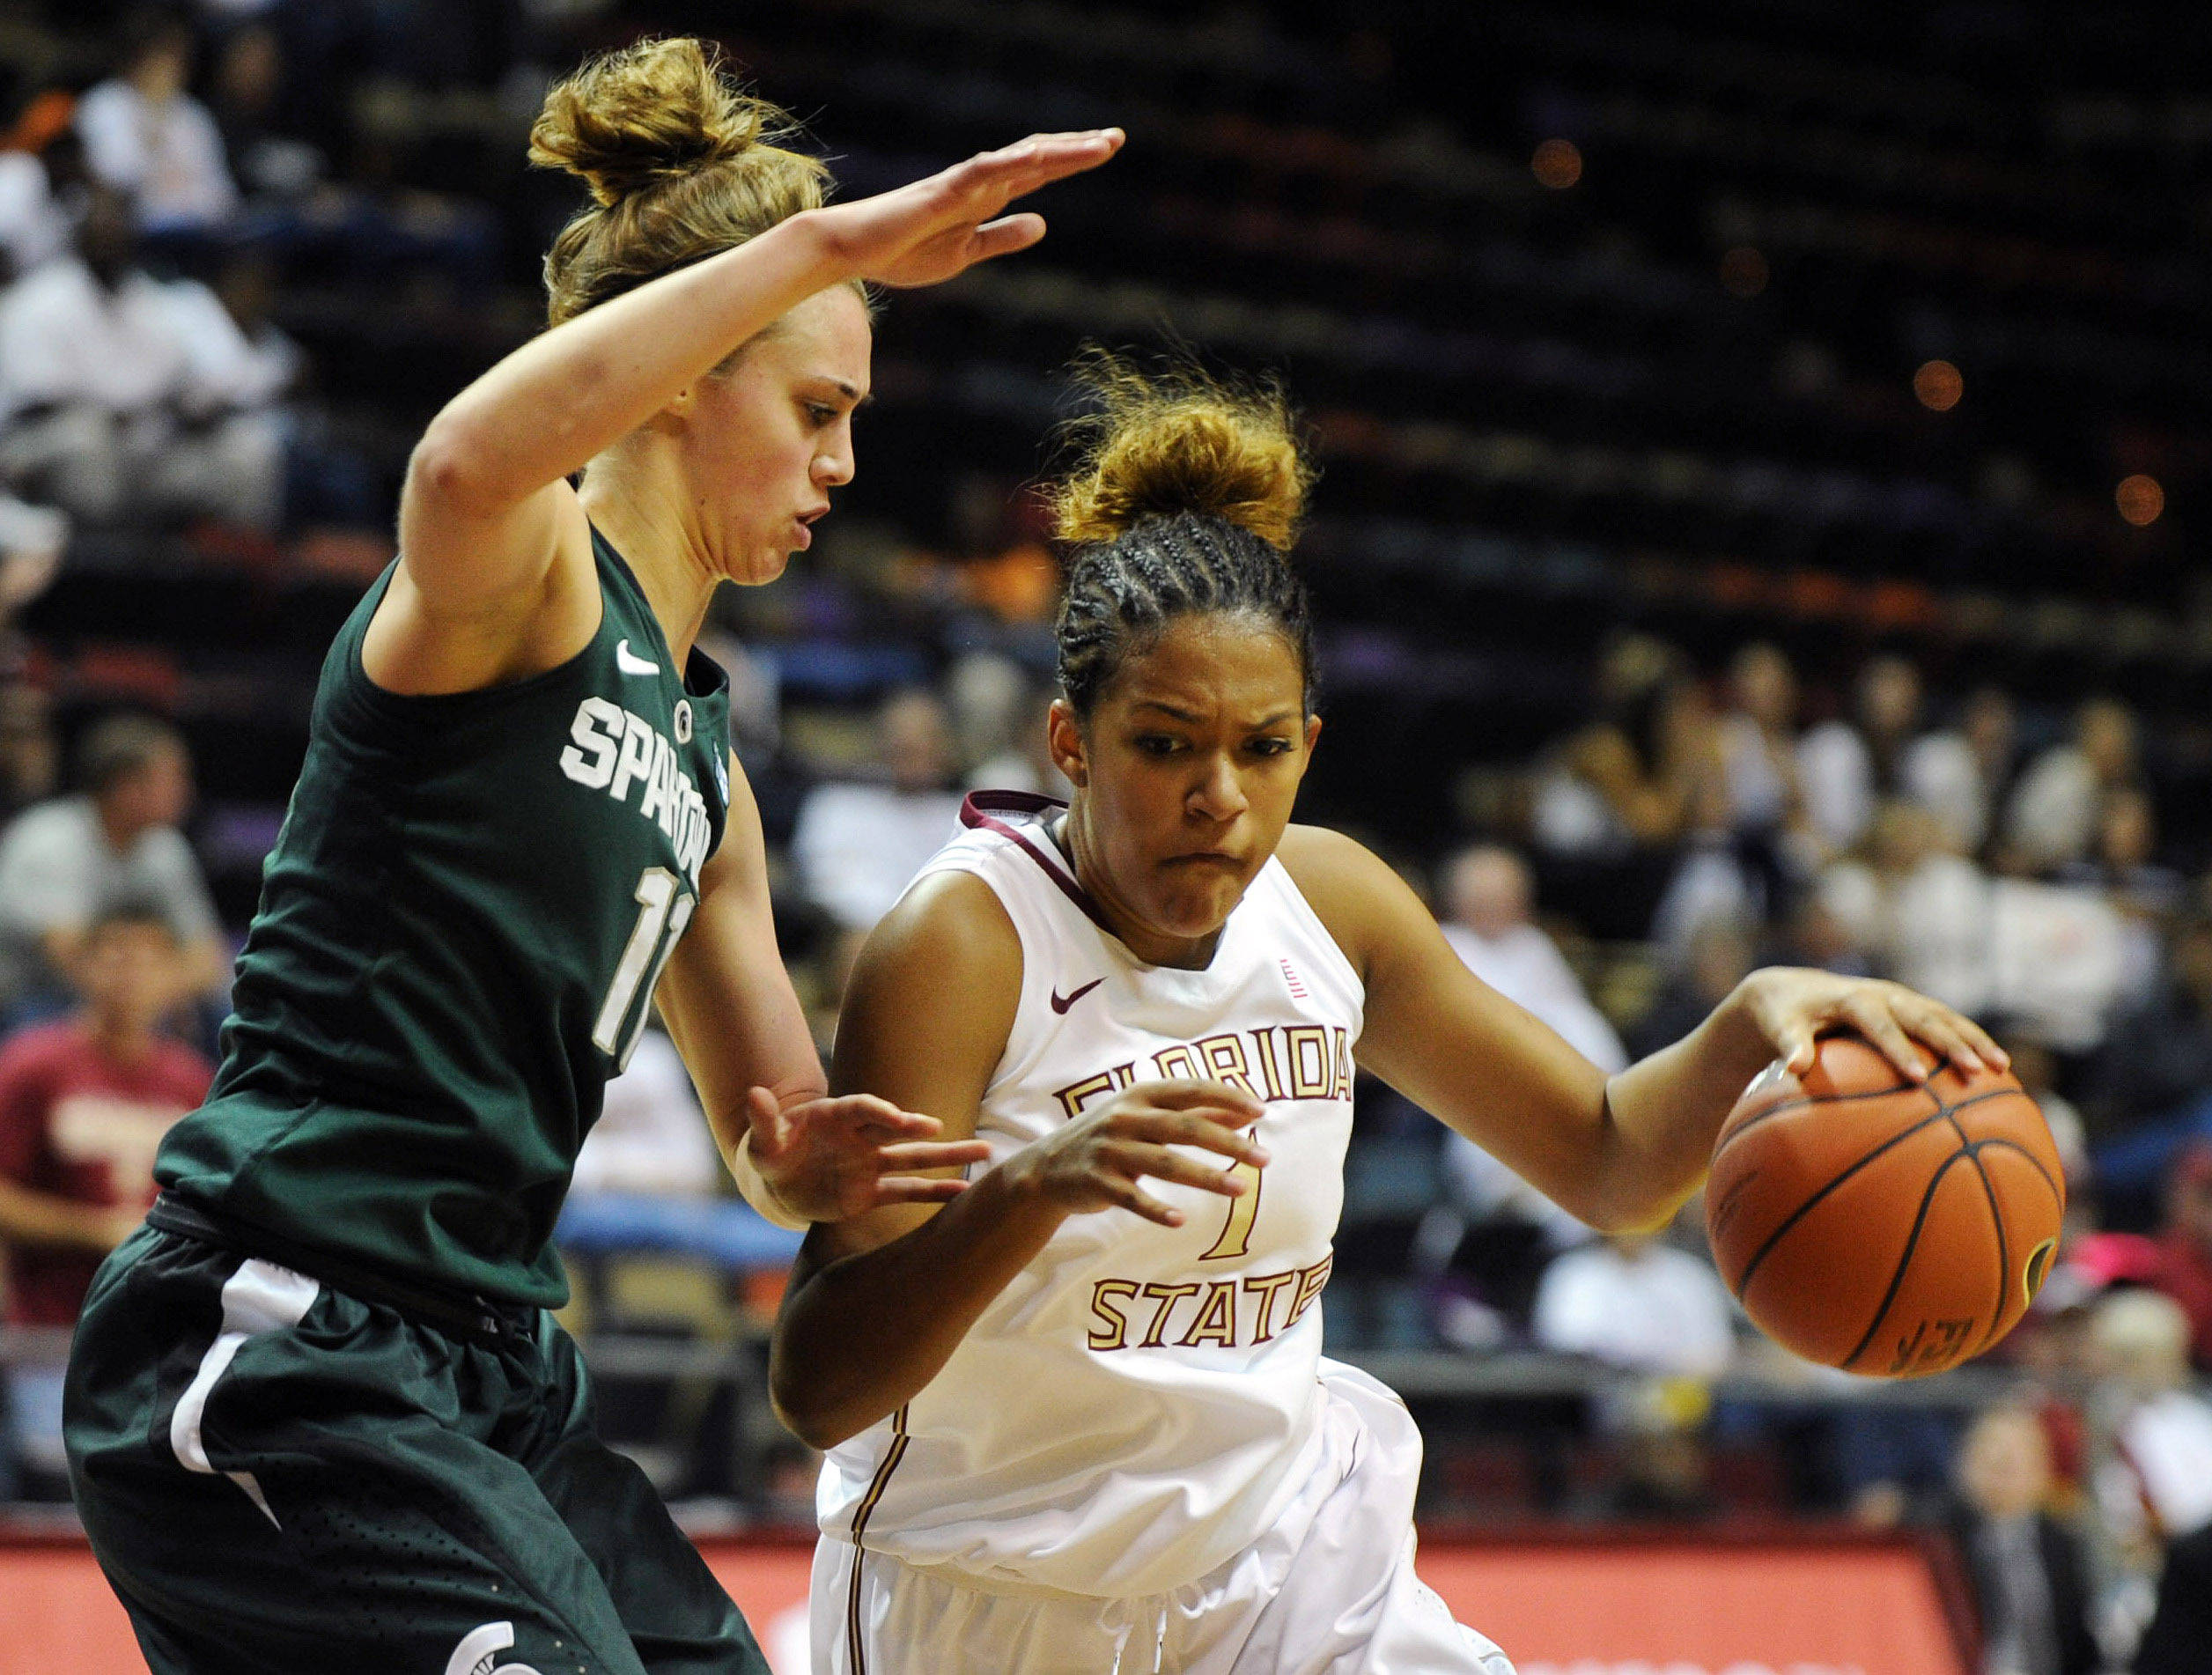 Dec 4, 2013; Tallahassee, FL, USA; Florida State Seminoles guard Morgan Jones (1) moves past Michigan State Spartans forward Annalise Pickrel (11) during the game at the Donald L. Tucker Center. Mandatory Credit: Melina Vastola-USA TODAY Sports